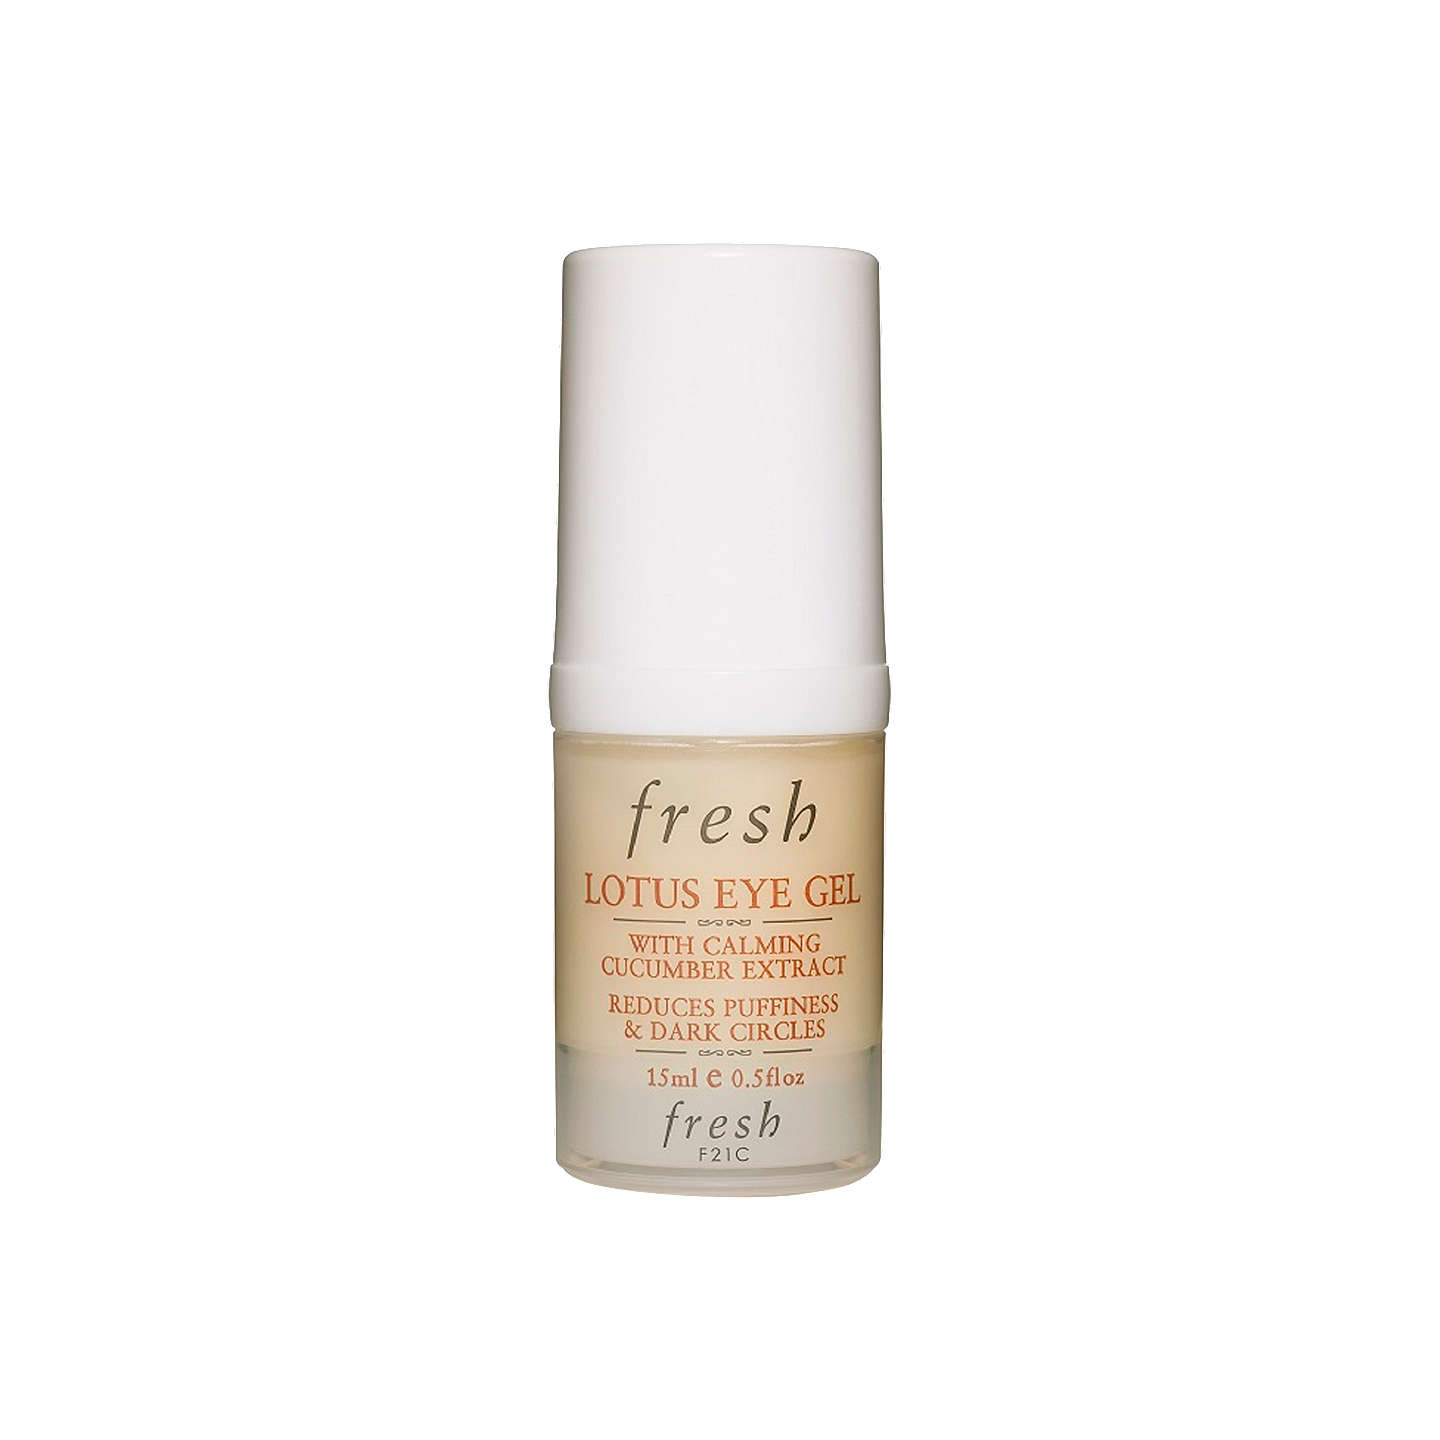 BuyFresh Lotus Eye Gel, 15ml Online at johnlewis.com